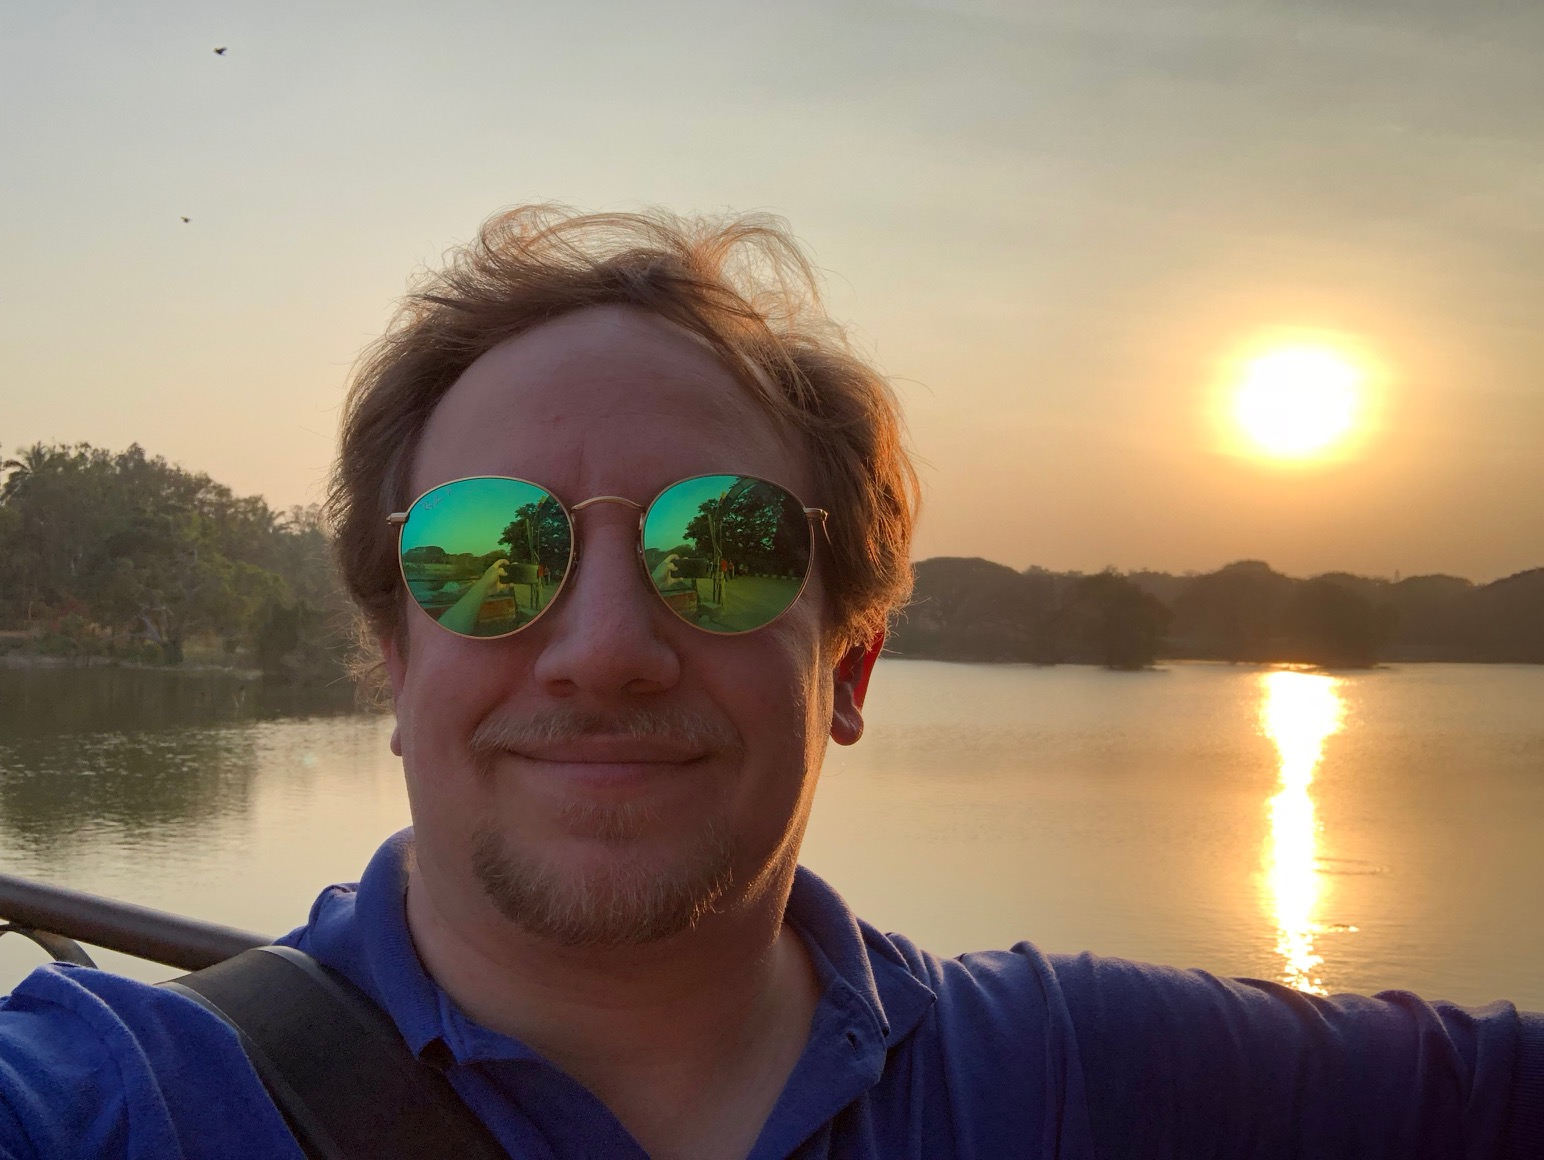 The sun sets over a lake, behind a man with a goatee, messy blond hair, and preposterous sunglasses.